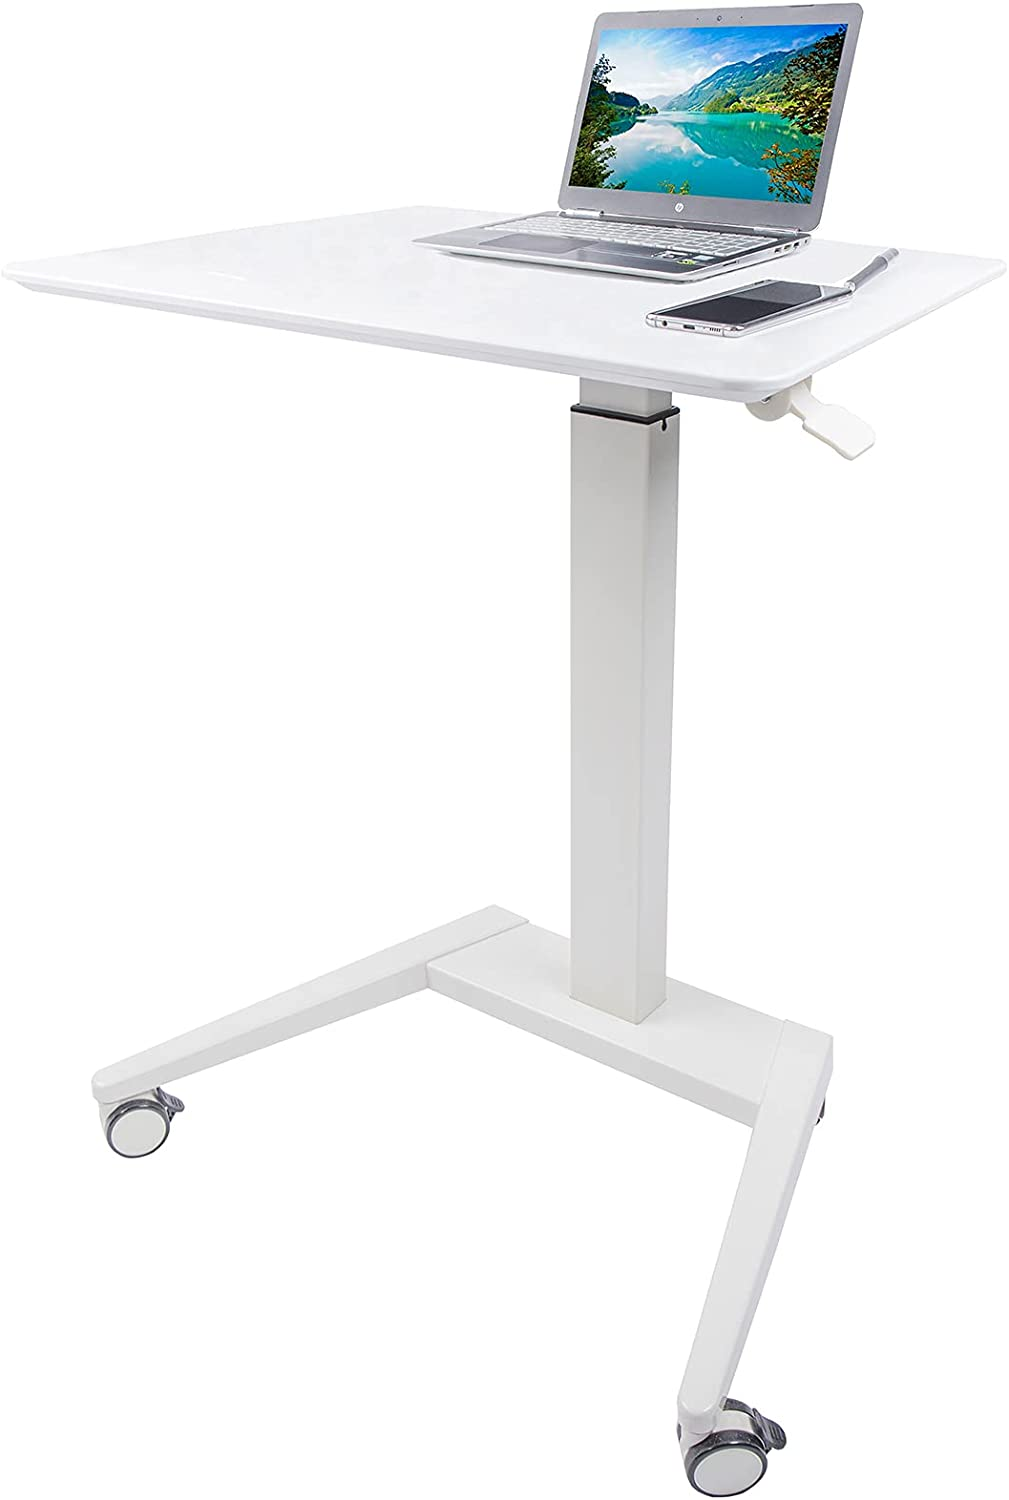 MEGAMILLION Mobile Laptop Standing Desk- Pneumatic Height Adjustable Sit Stand Laptop Rolling Cart, Multifunctional Mobile Podium, Portable Sit Stand Lectern for Classrooms, Offices, and Home